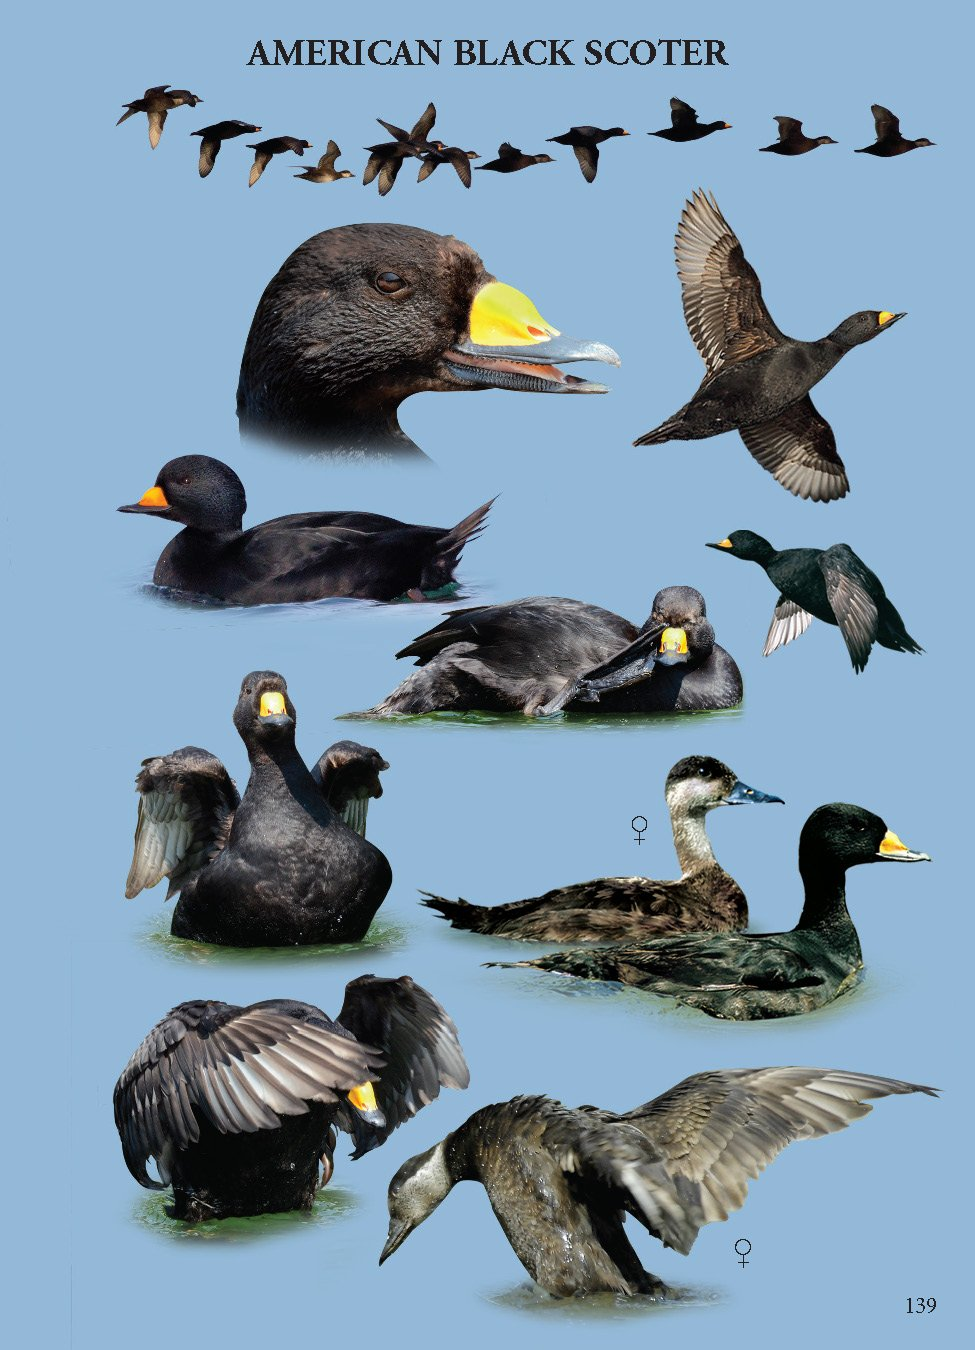 American Black Scoter Anatomy